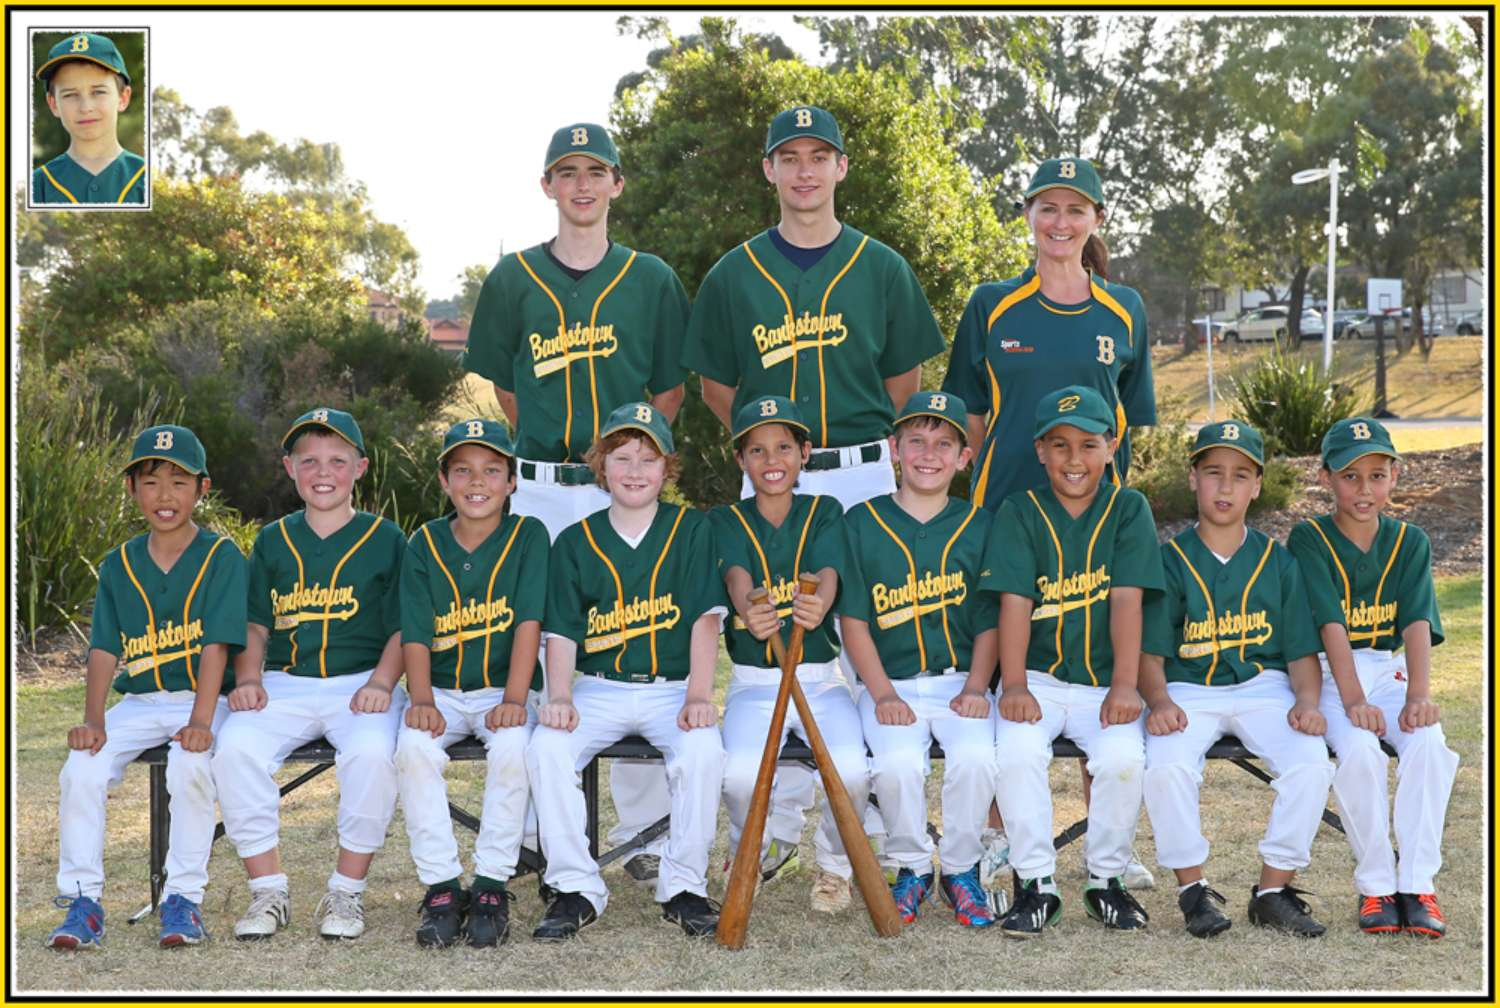 2013-14 U10 Red Sox Team with inset-1500.jpg